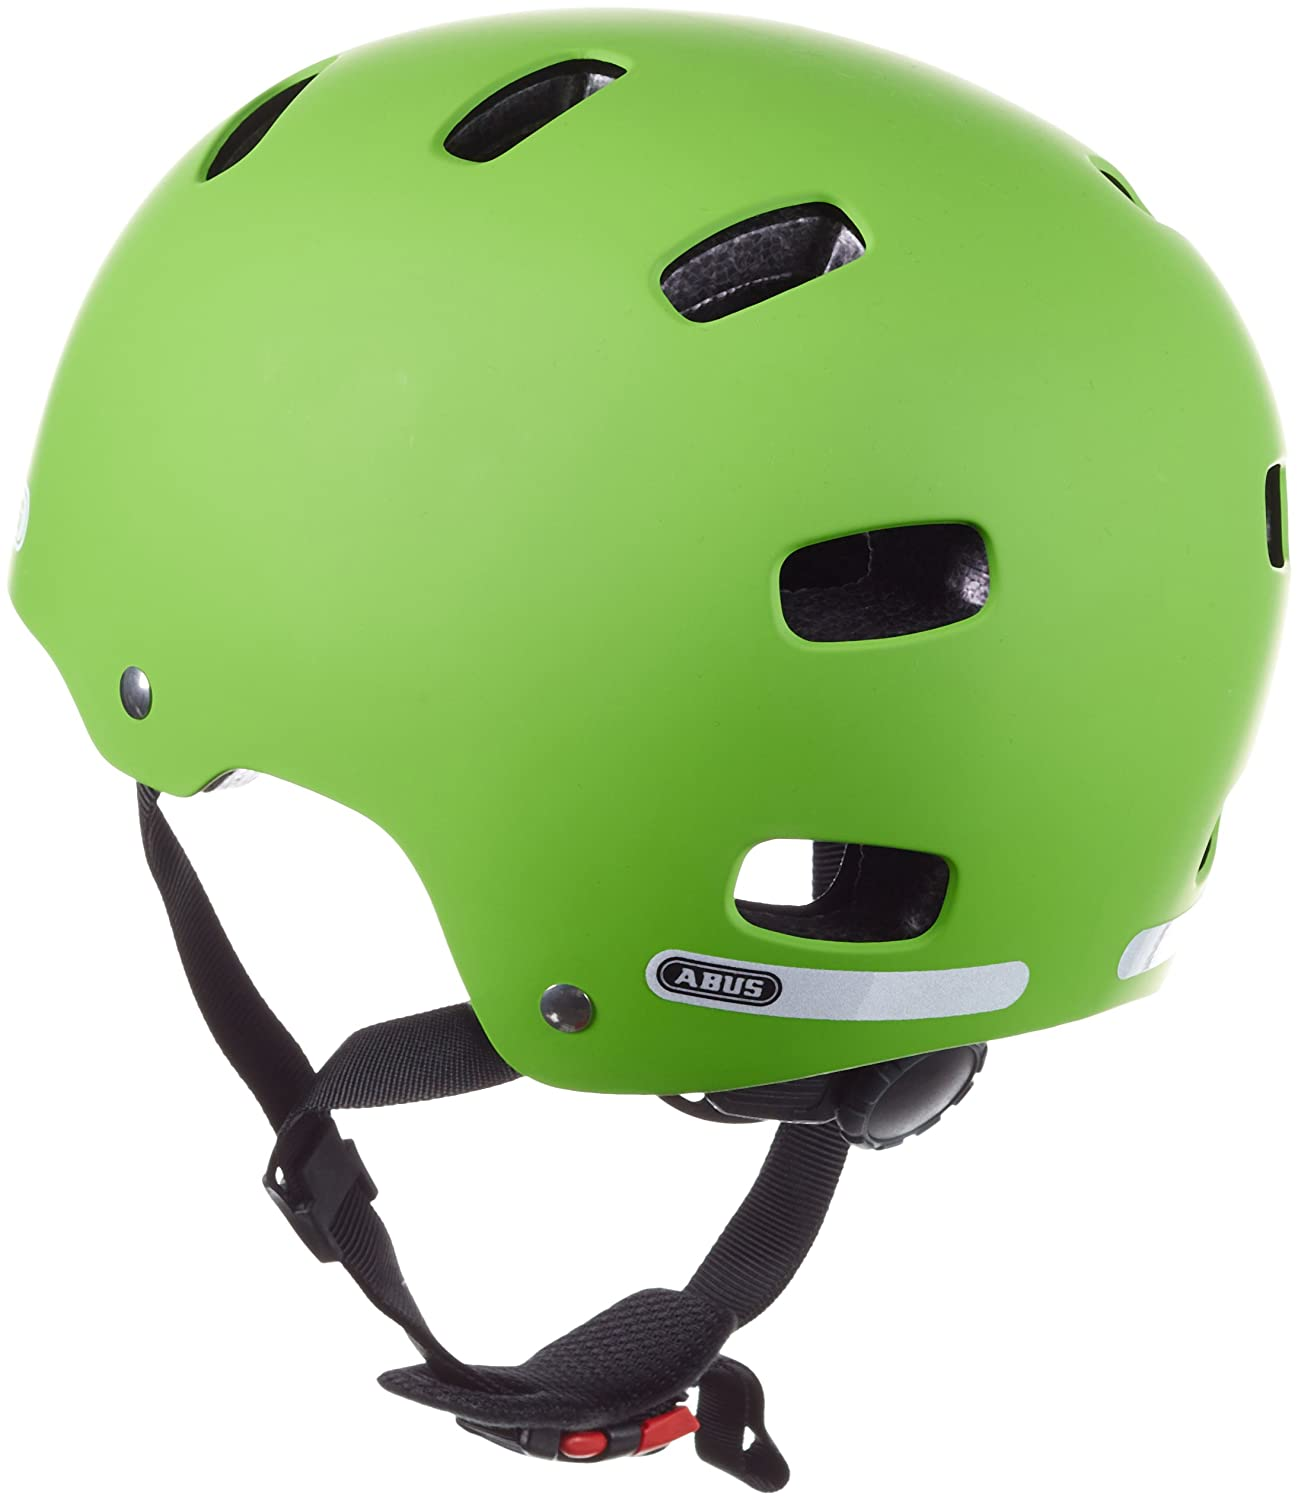 Abus Kinder Fahrradhelm Scraper Kid V 2 green 48 55 cm 3 Amazon Sport & Freizeit